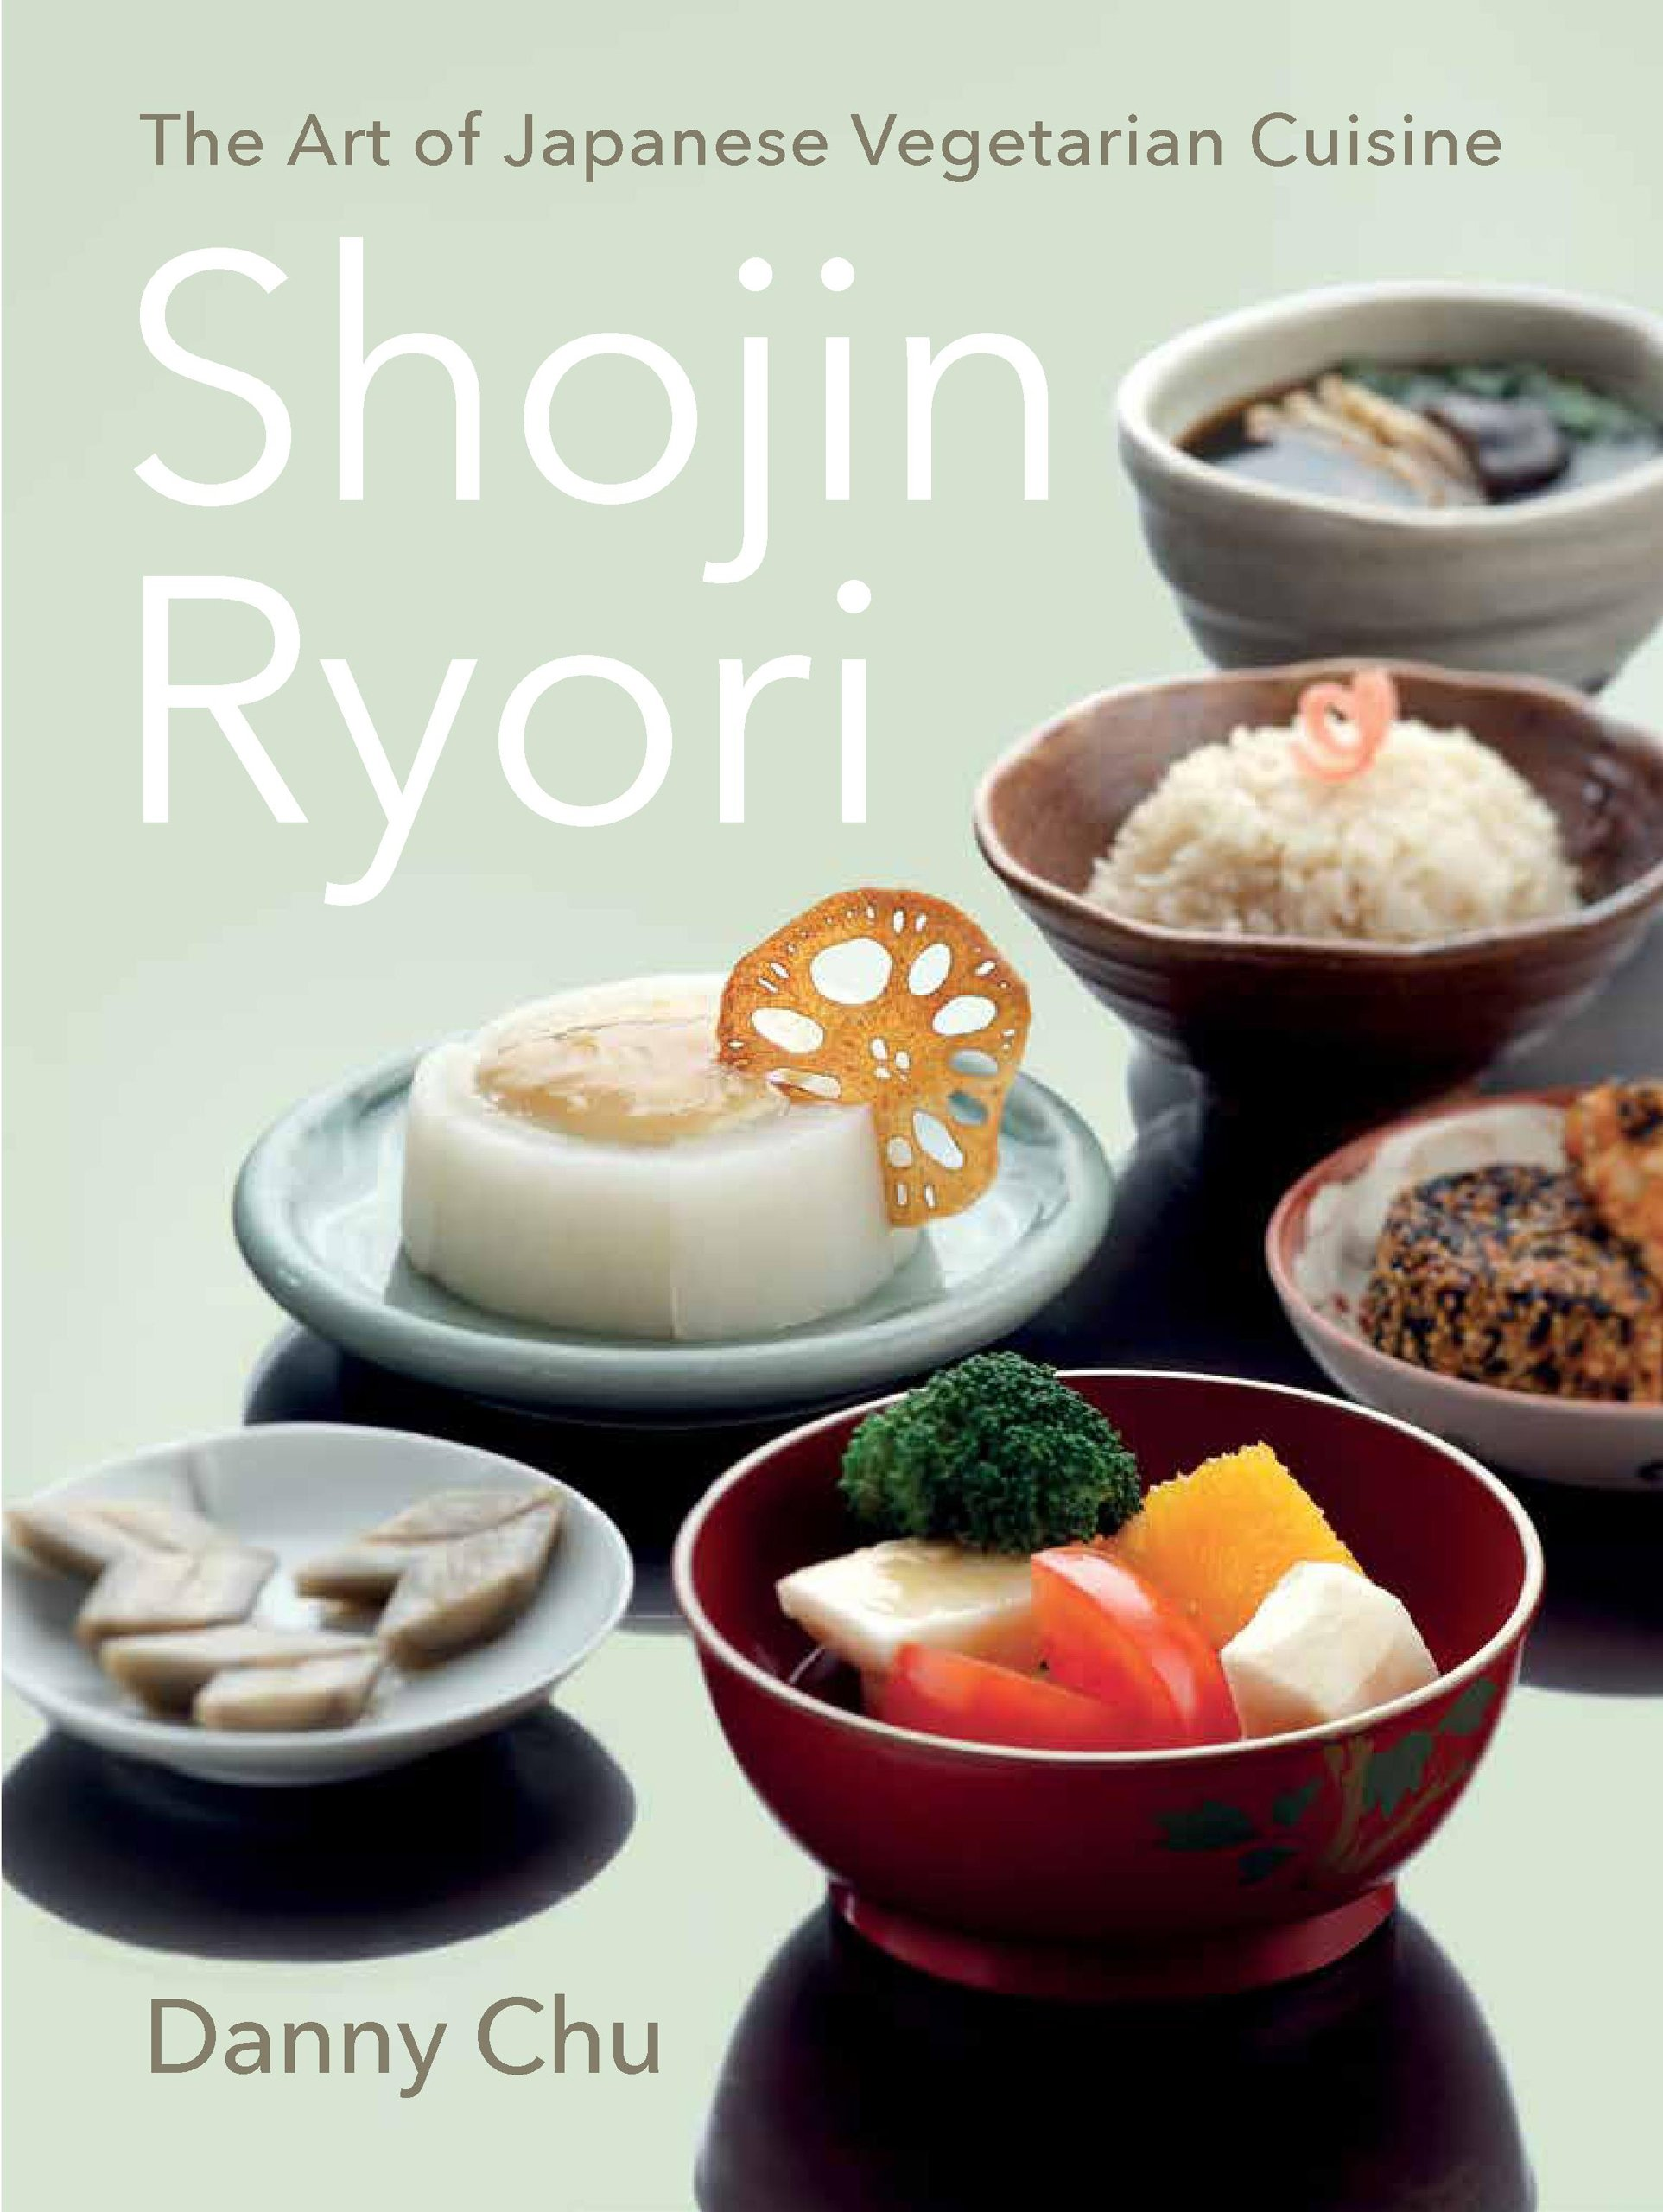 Shojin ryori the art of japanese vegetarian cuisine danny chu shojin ryori the art of japanese vegetarian cuisine danny chu 9789814516280 amazon books forumfinder Gallery